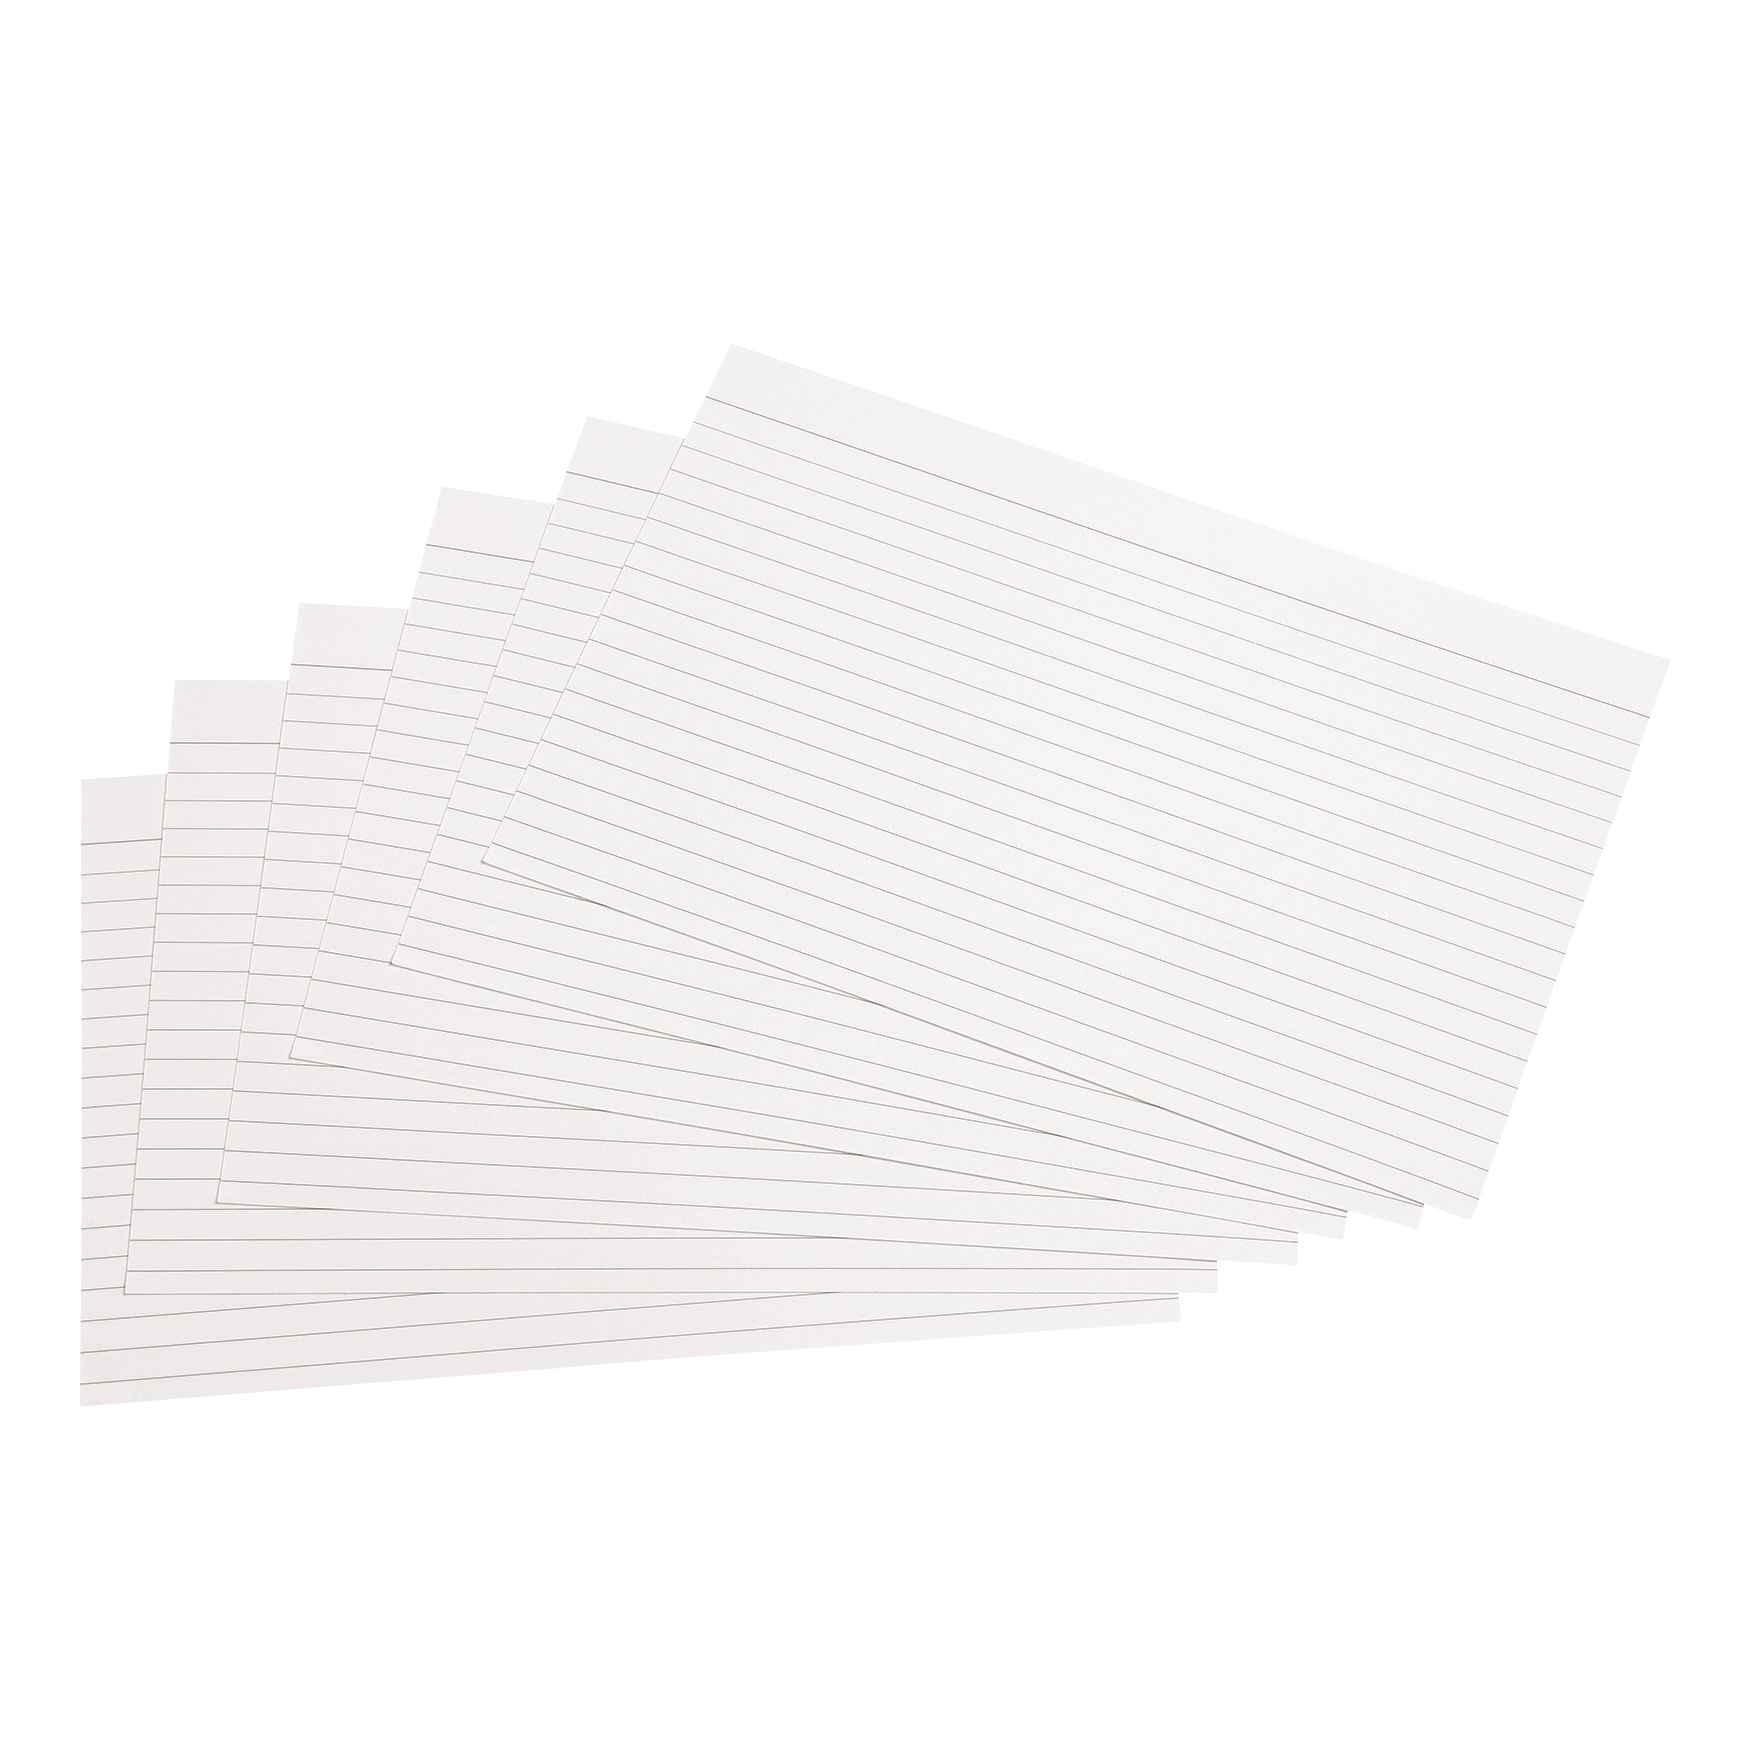 Image for 5 Star Office Record Cards Ruled Both Sides 8x5in 203x127mm White [Pack 100]